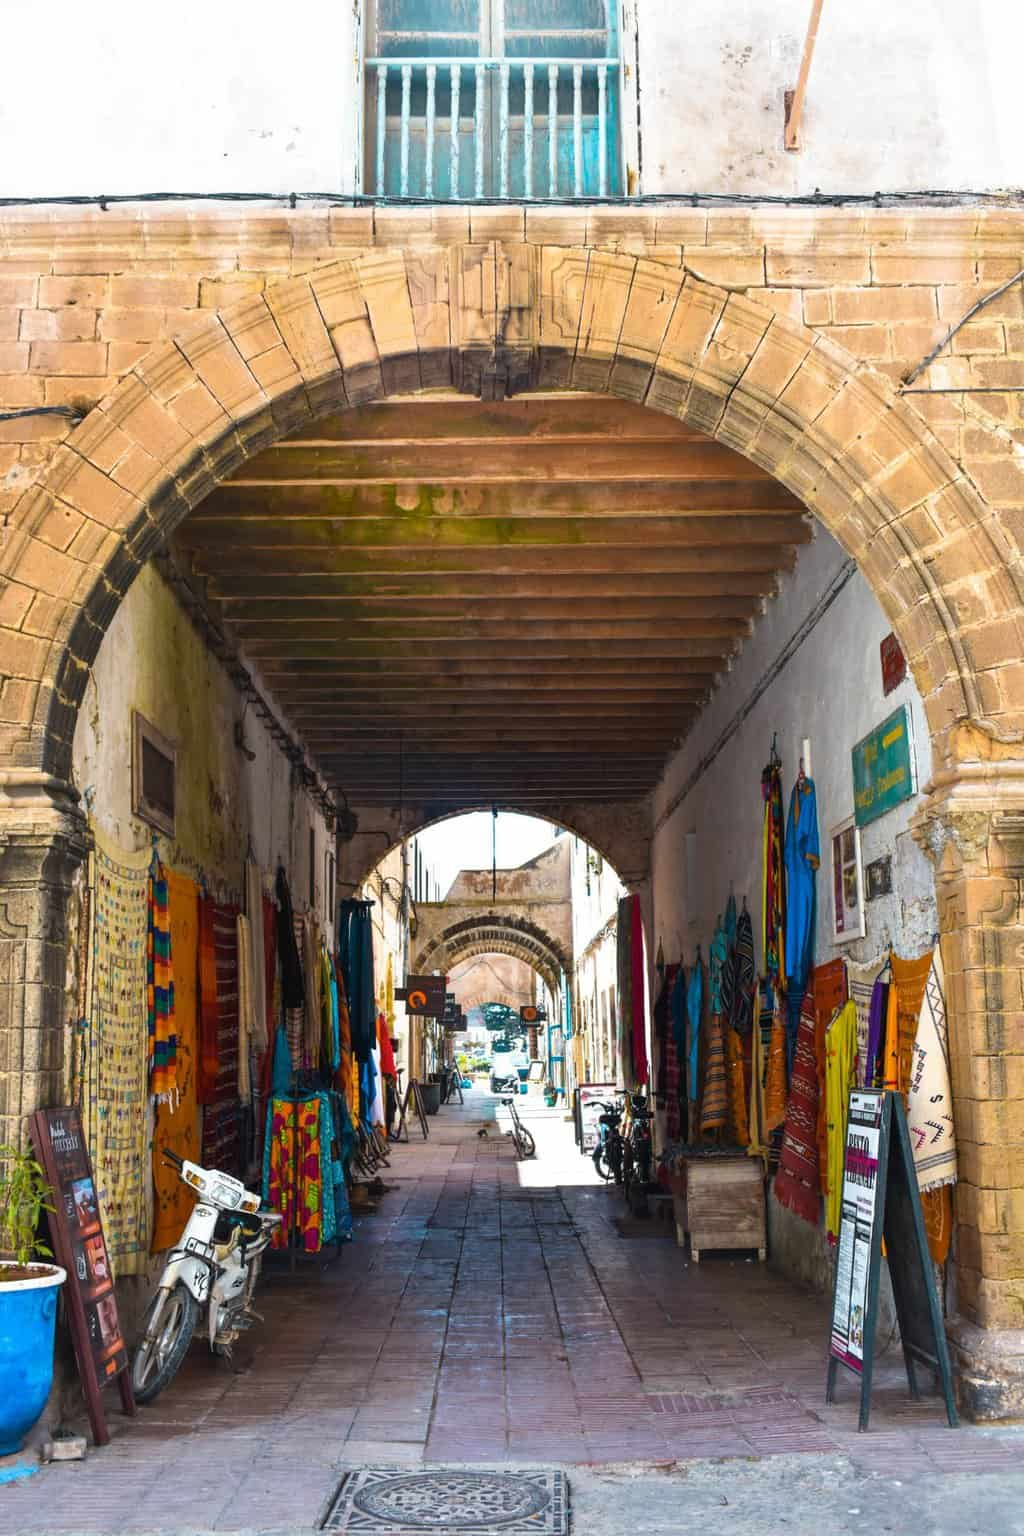 the entrance to the medina in Essaouira